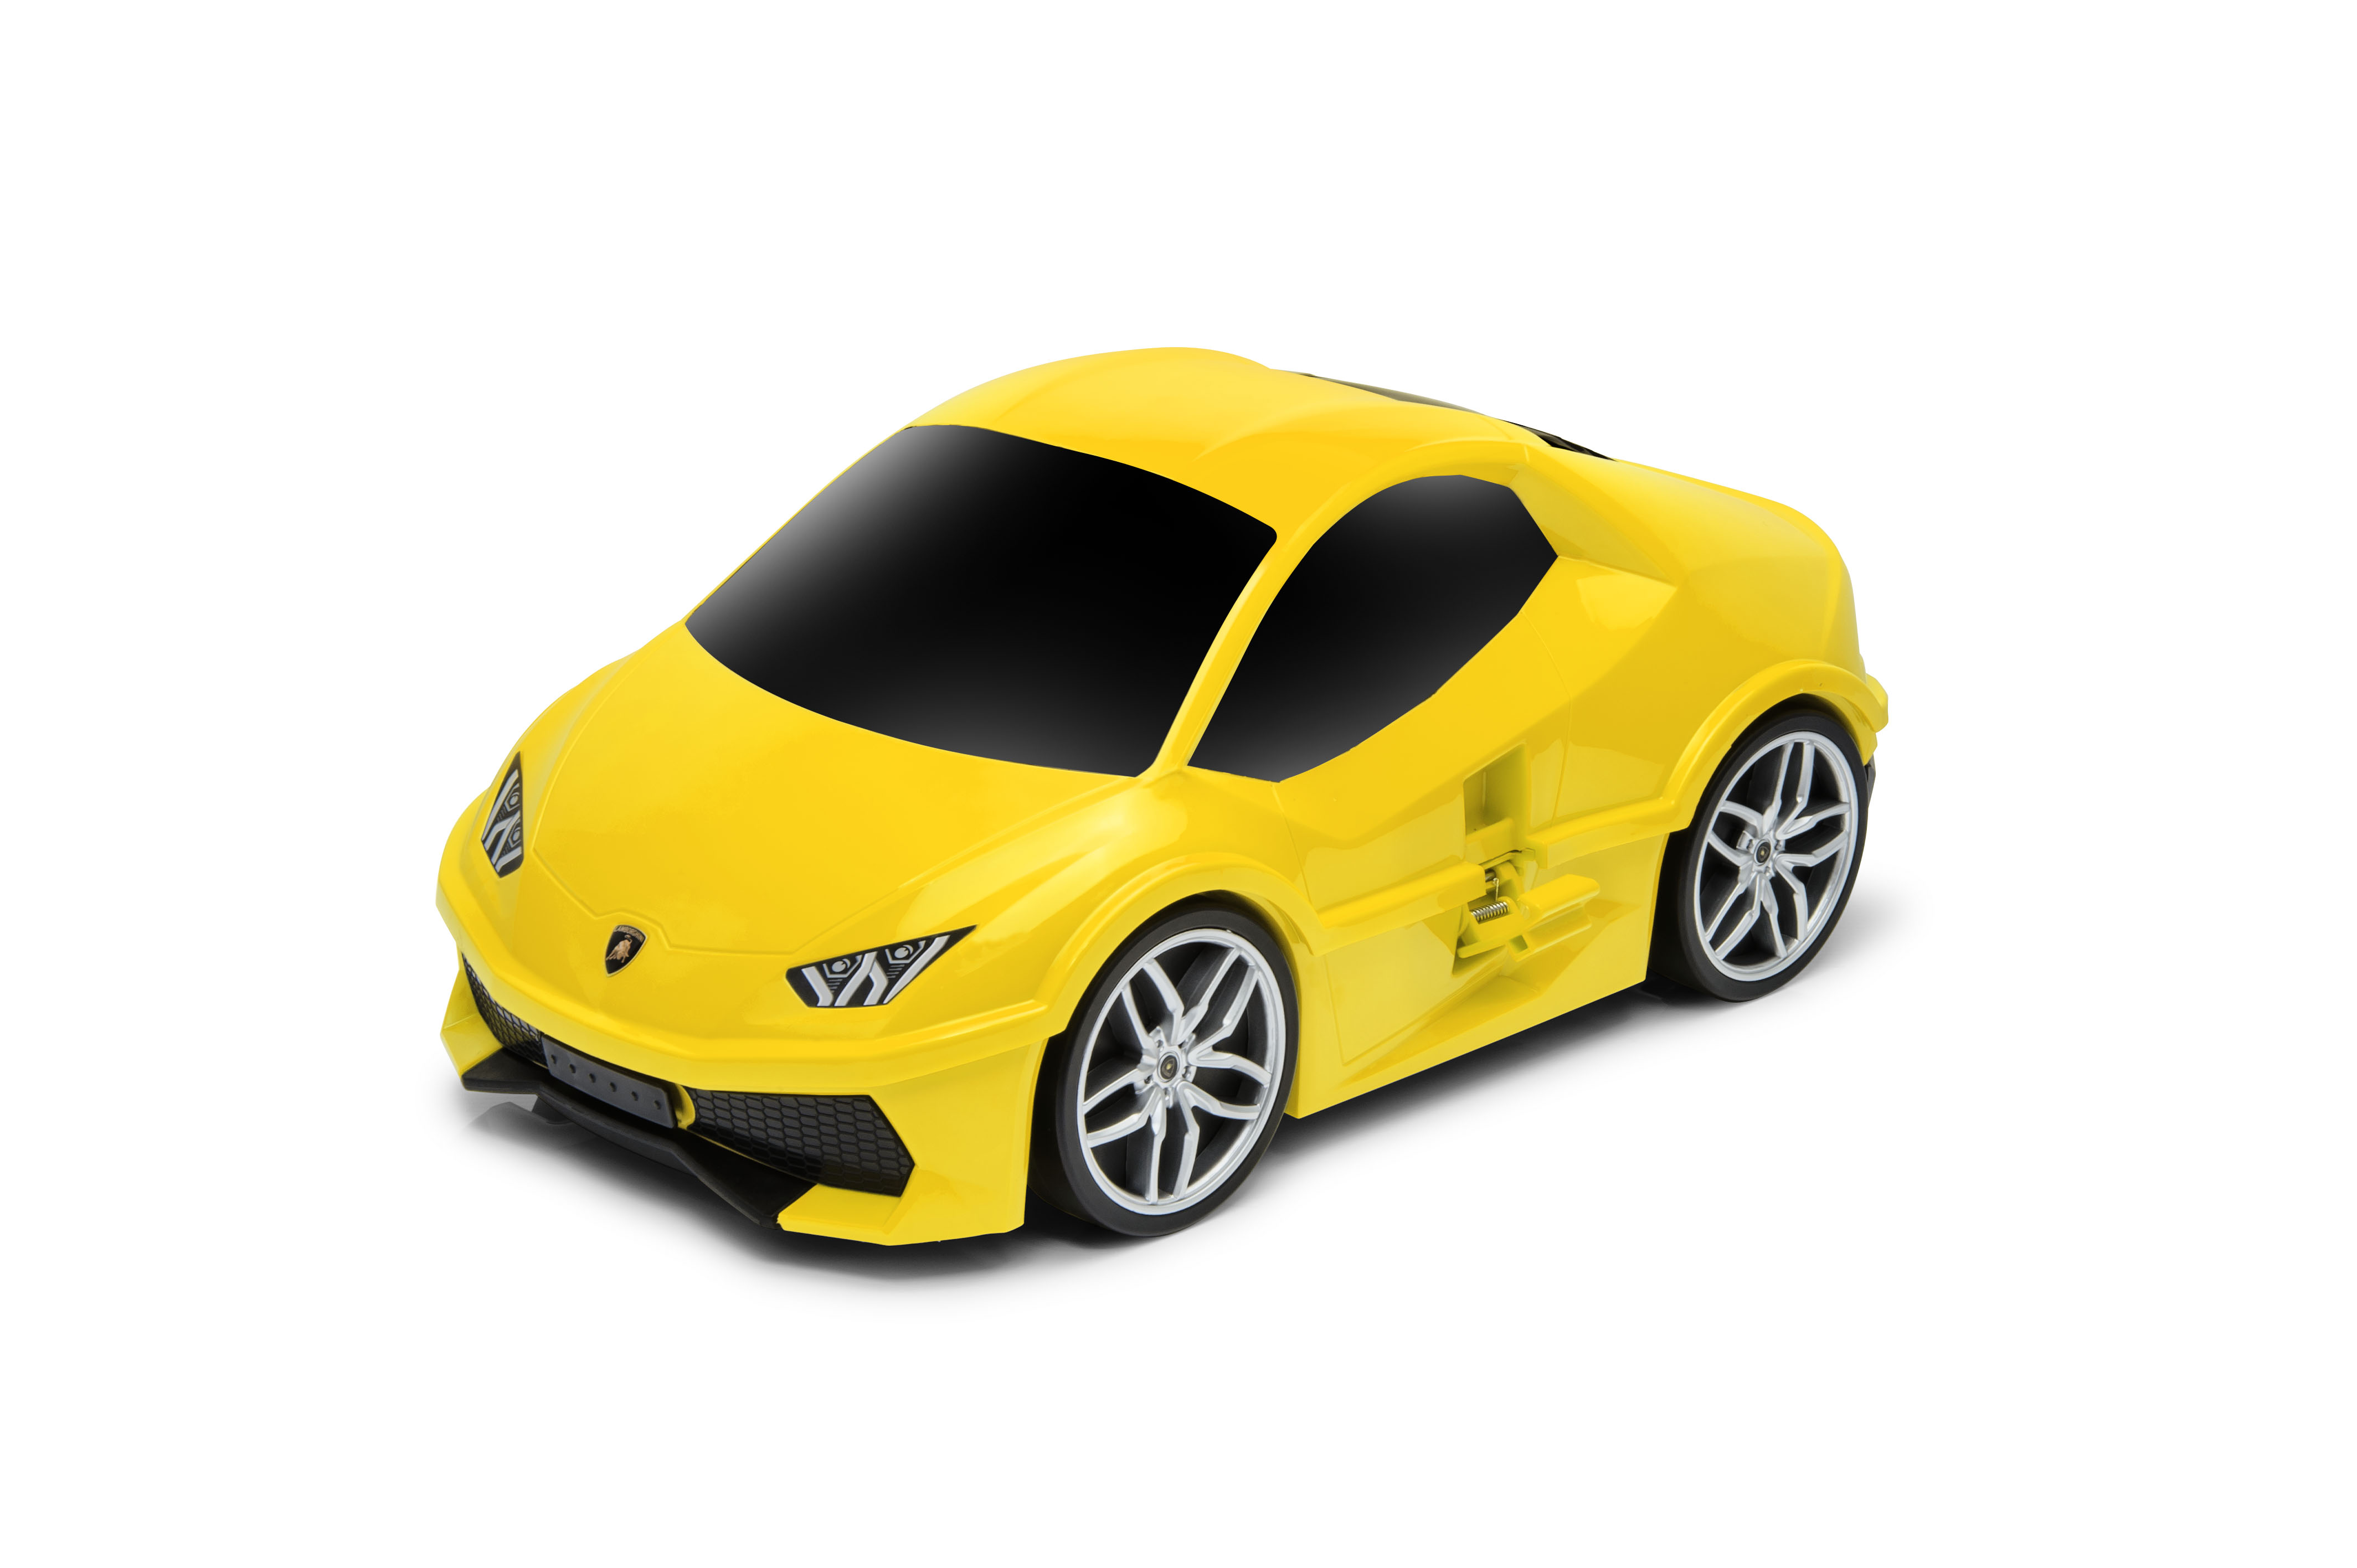 lamborghini toy car remote control with 191669582592 on 252035378509 likewise Kids Electric Cars as well Electric Toy Car For Toddlers moreover Lamborghini baby battery car furthermore Ride On Tractor 6v Electric Battery Powered With Moving Excavator Scoop 2188 P.